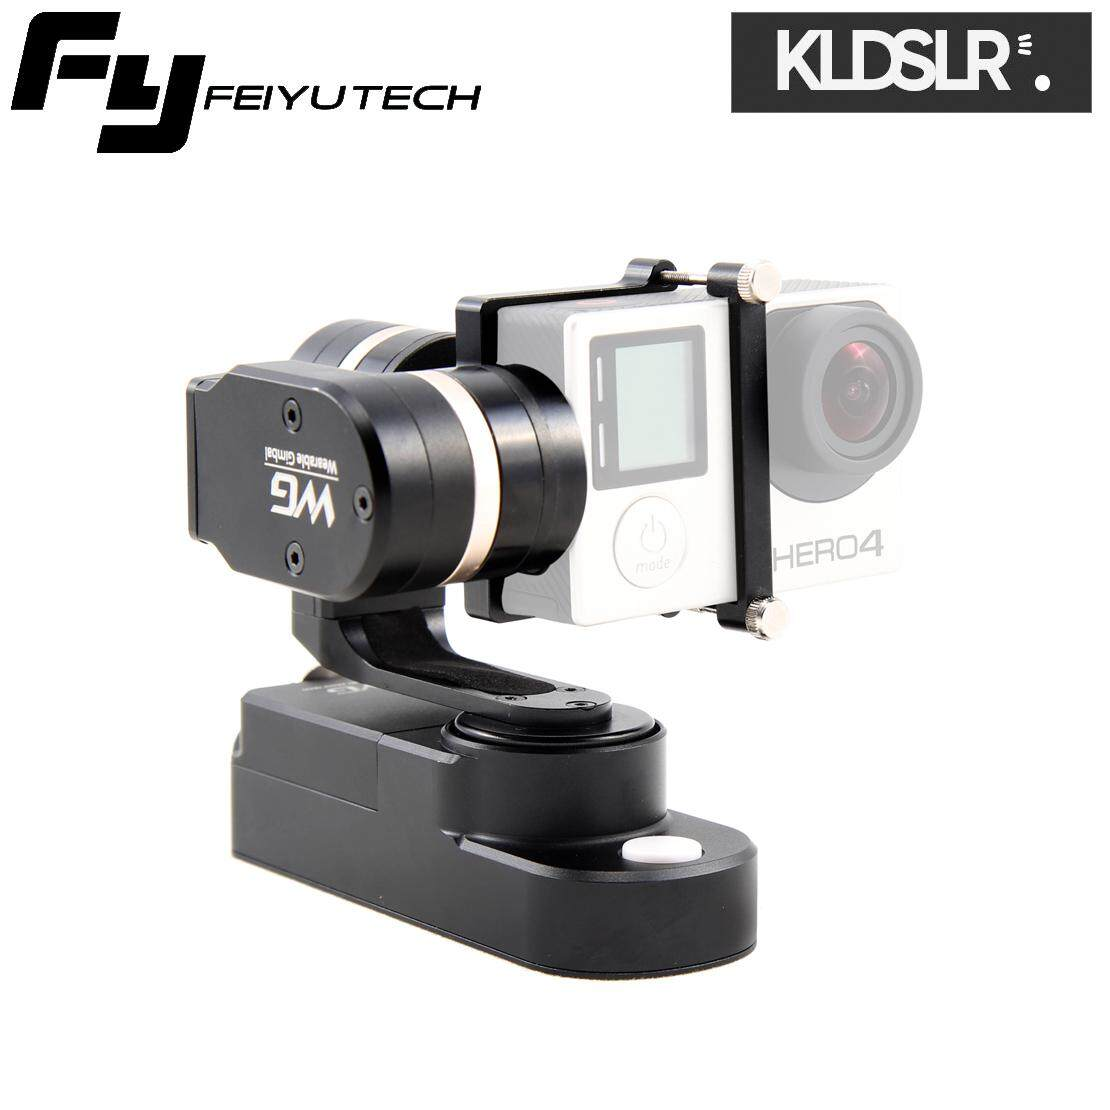 Feiyu Buy At Best Price In Malaysia Spg 3 Axis Handheld Steady Gimbal For Smartphones Extra Battrey Wg Wearable Gopro And Similar Action Cameras Fy